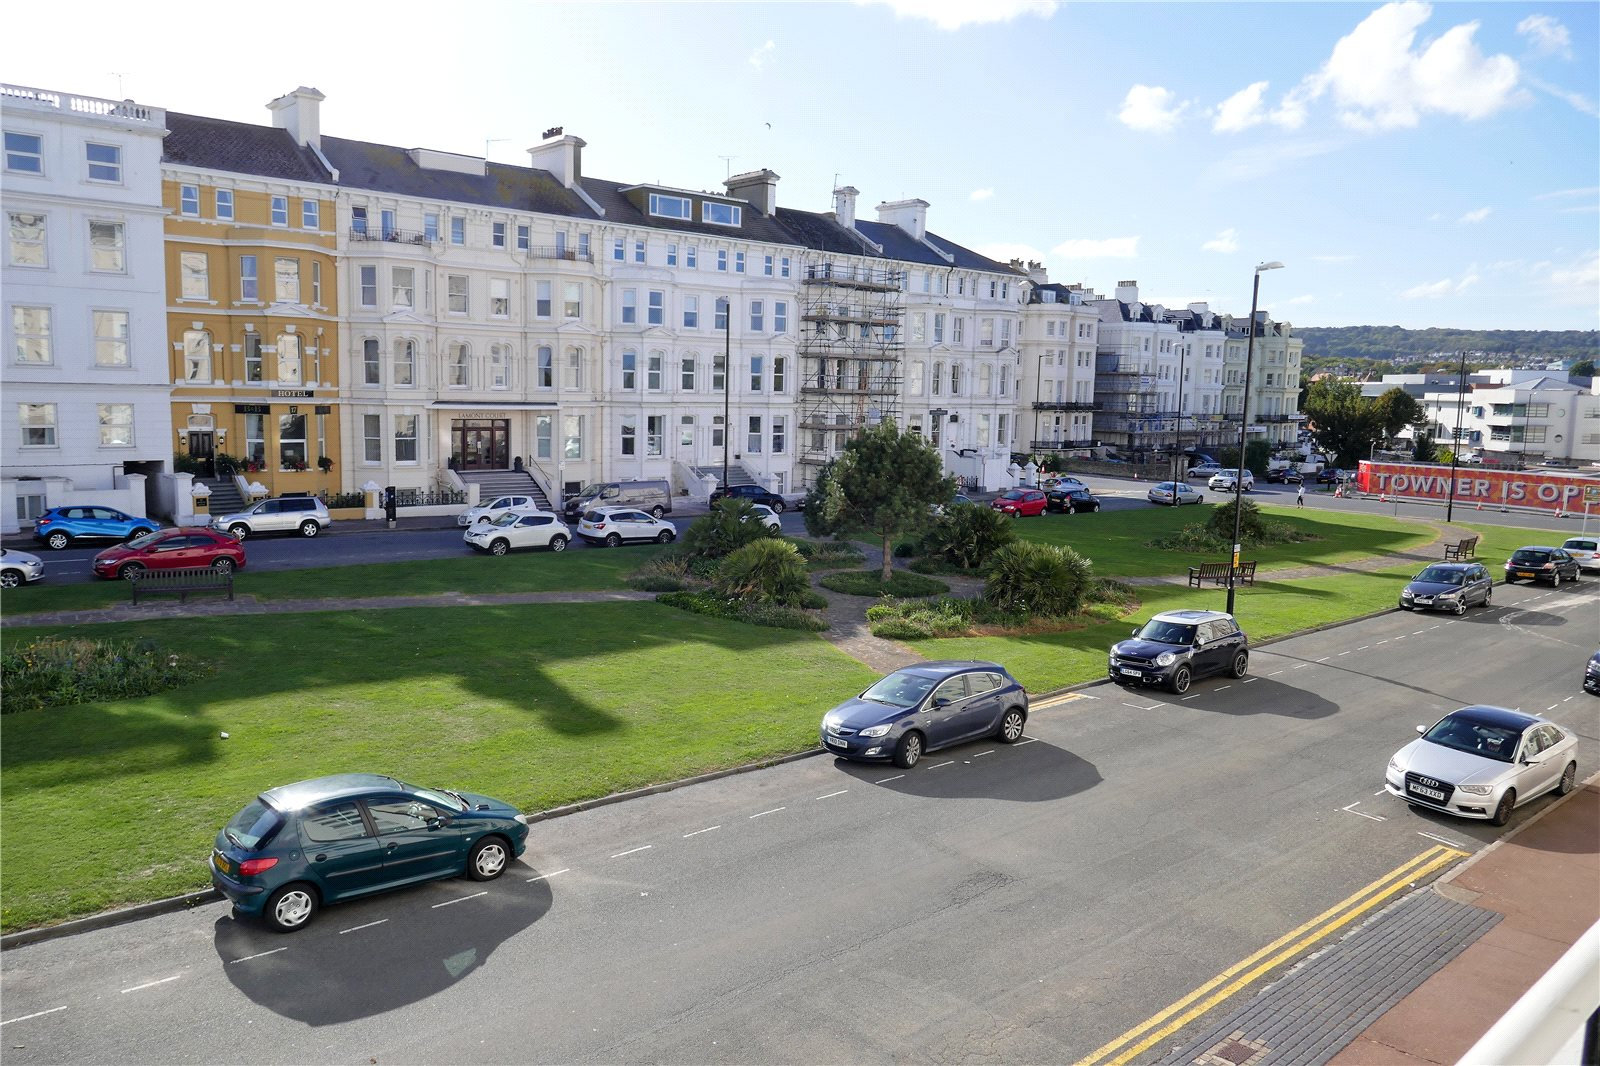 King Edwards Parade, Eastbourne